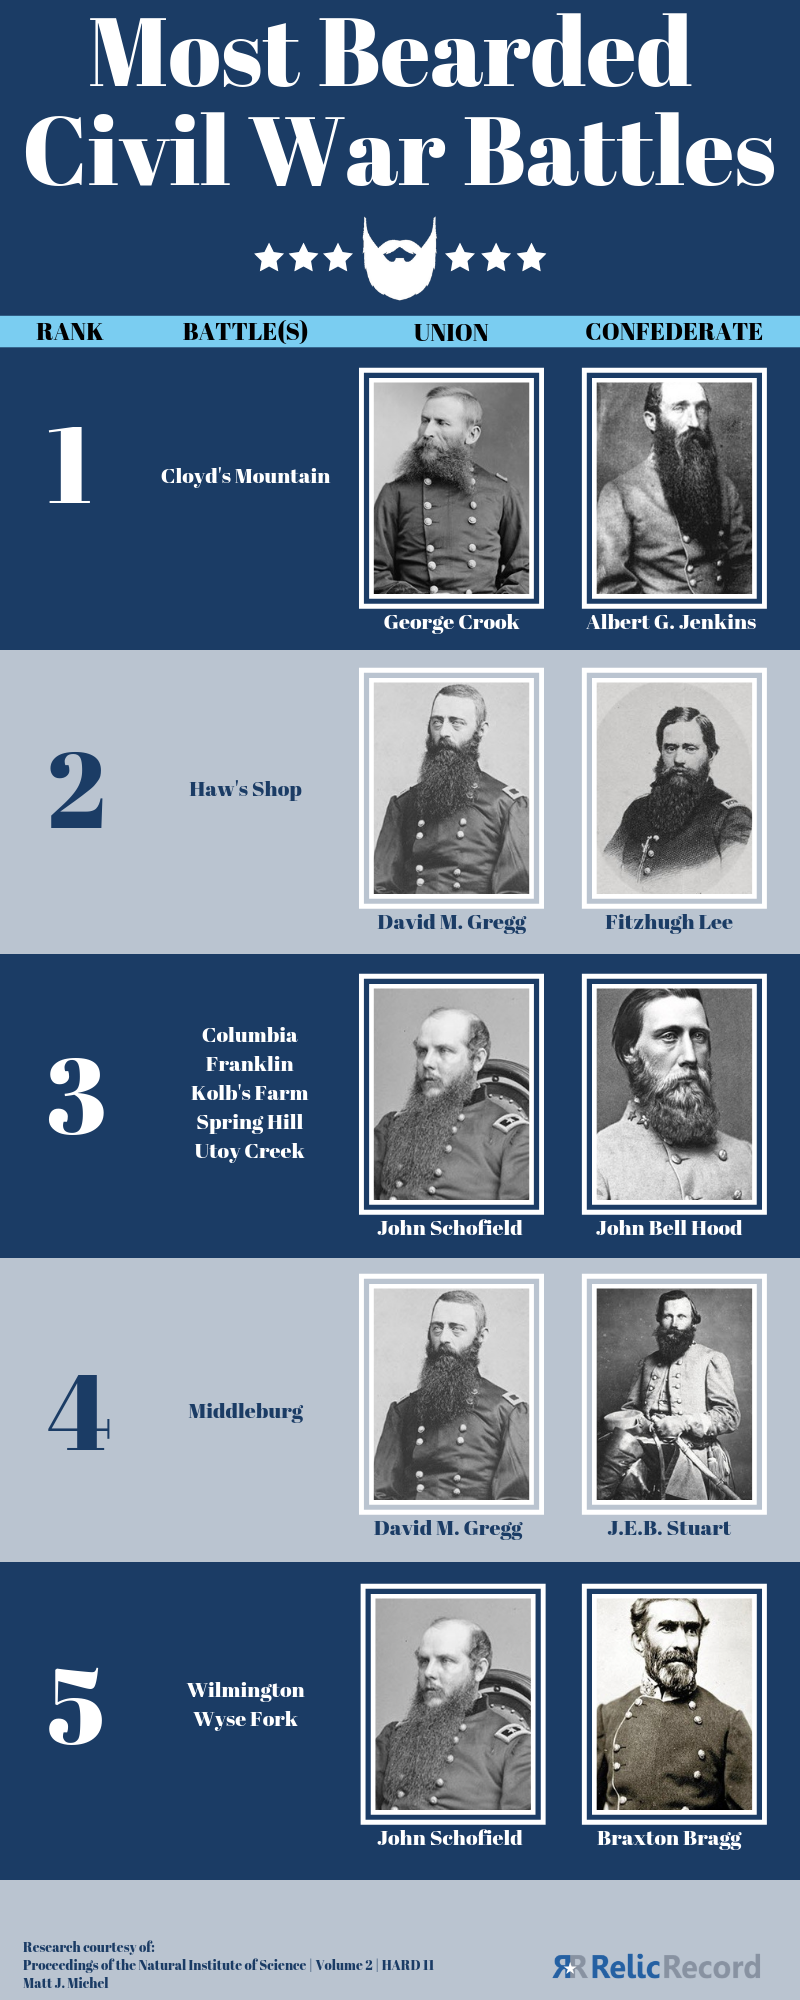 Most Bearded Battles of the Civil War